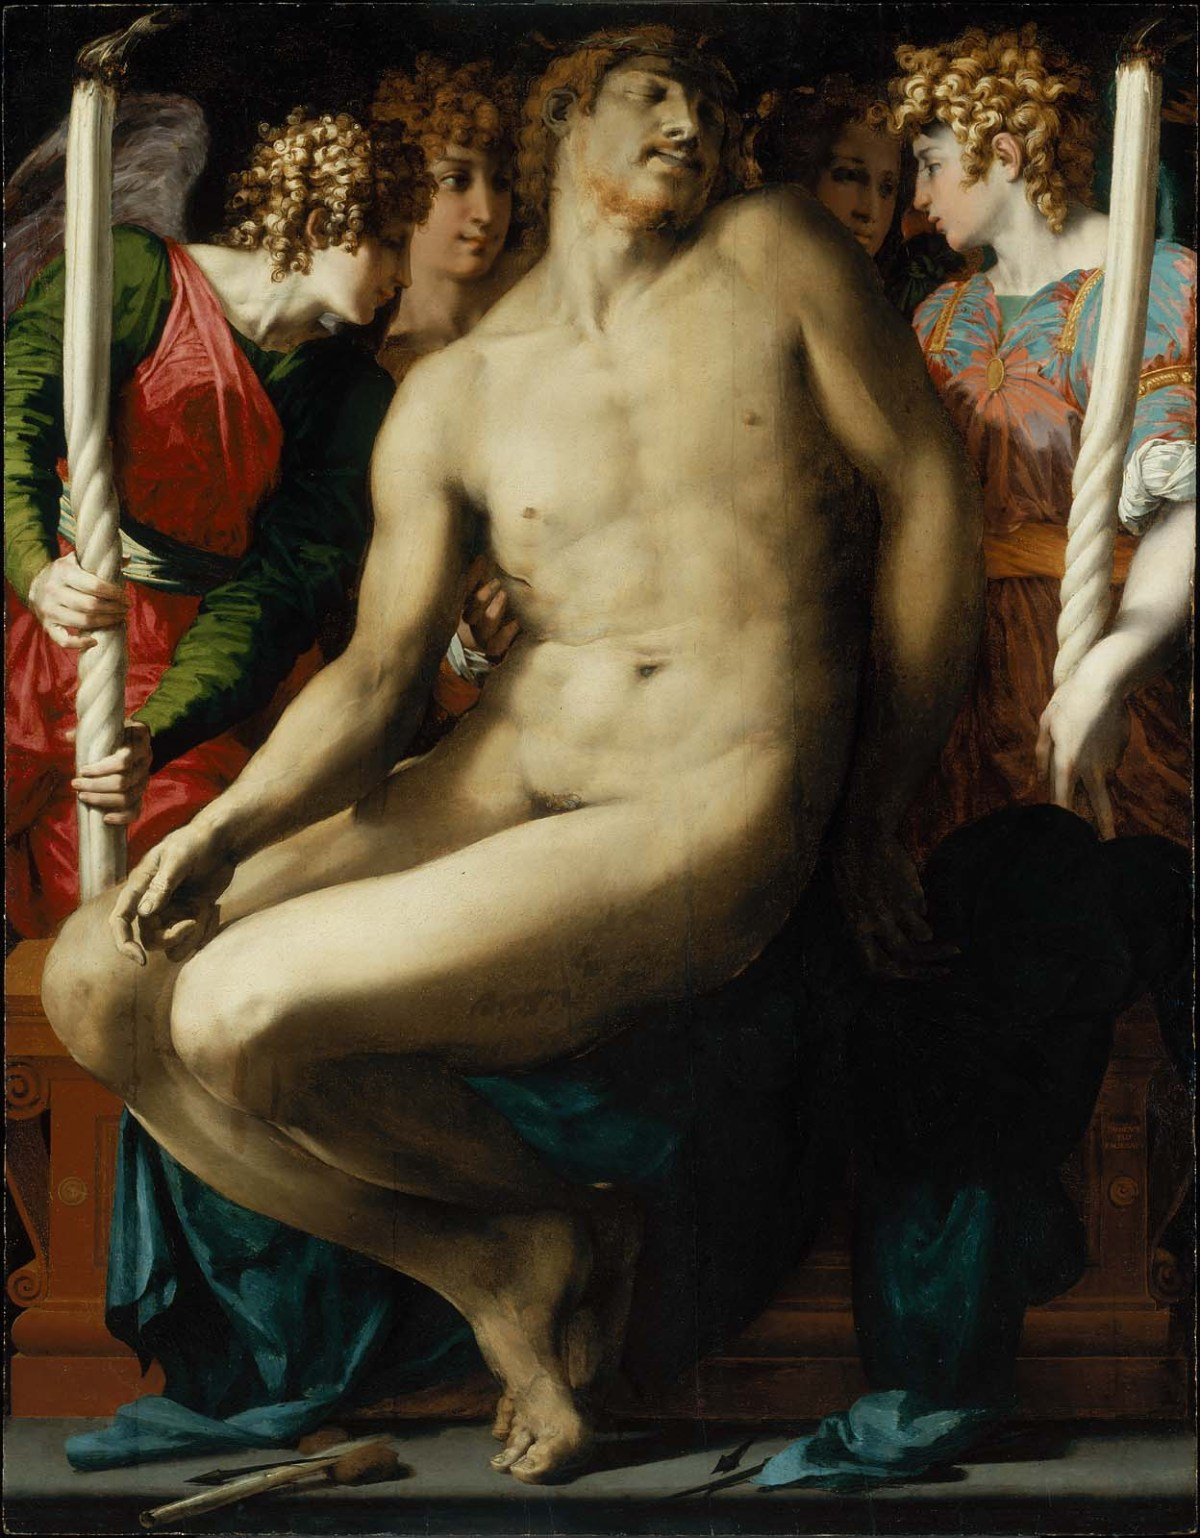 Dead Christ with Angels by Rosso Fiorentino